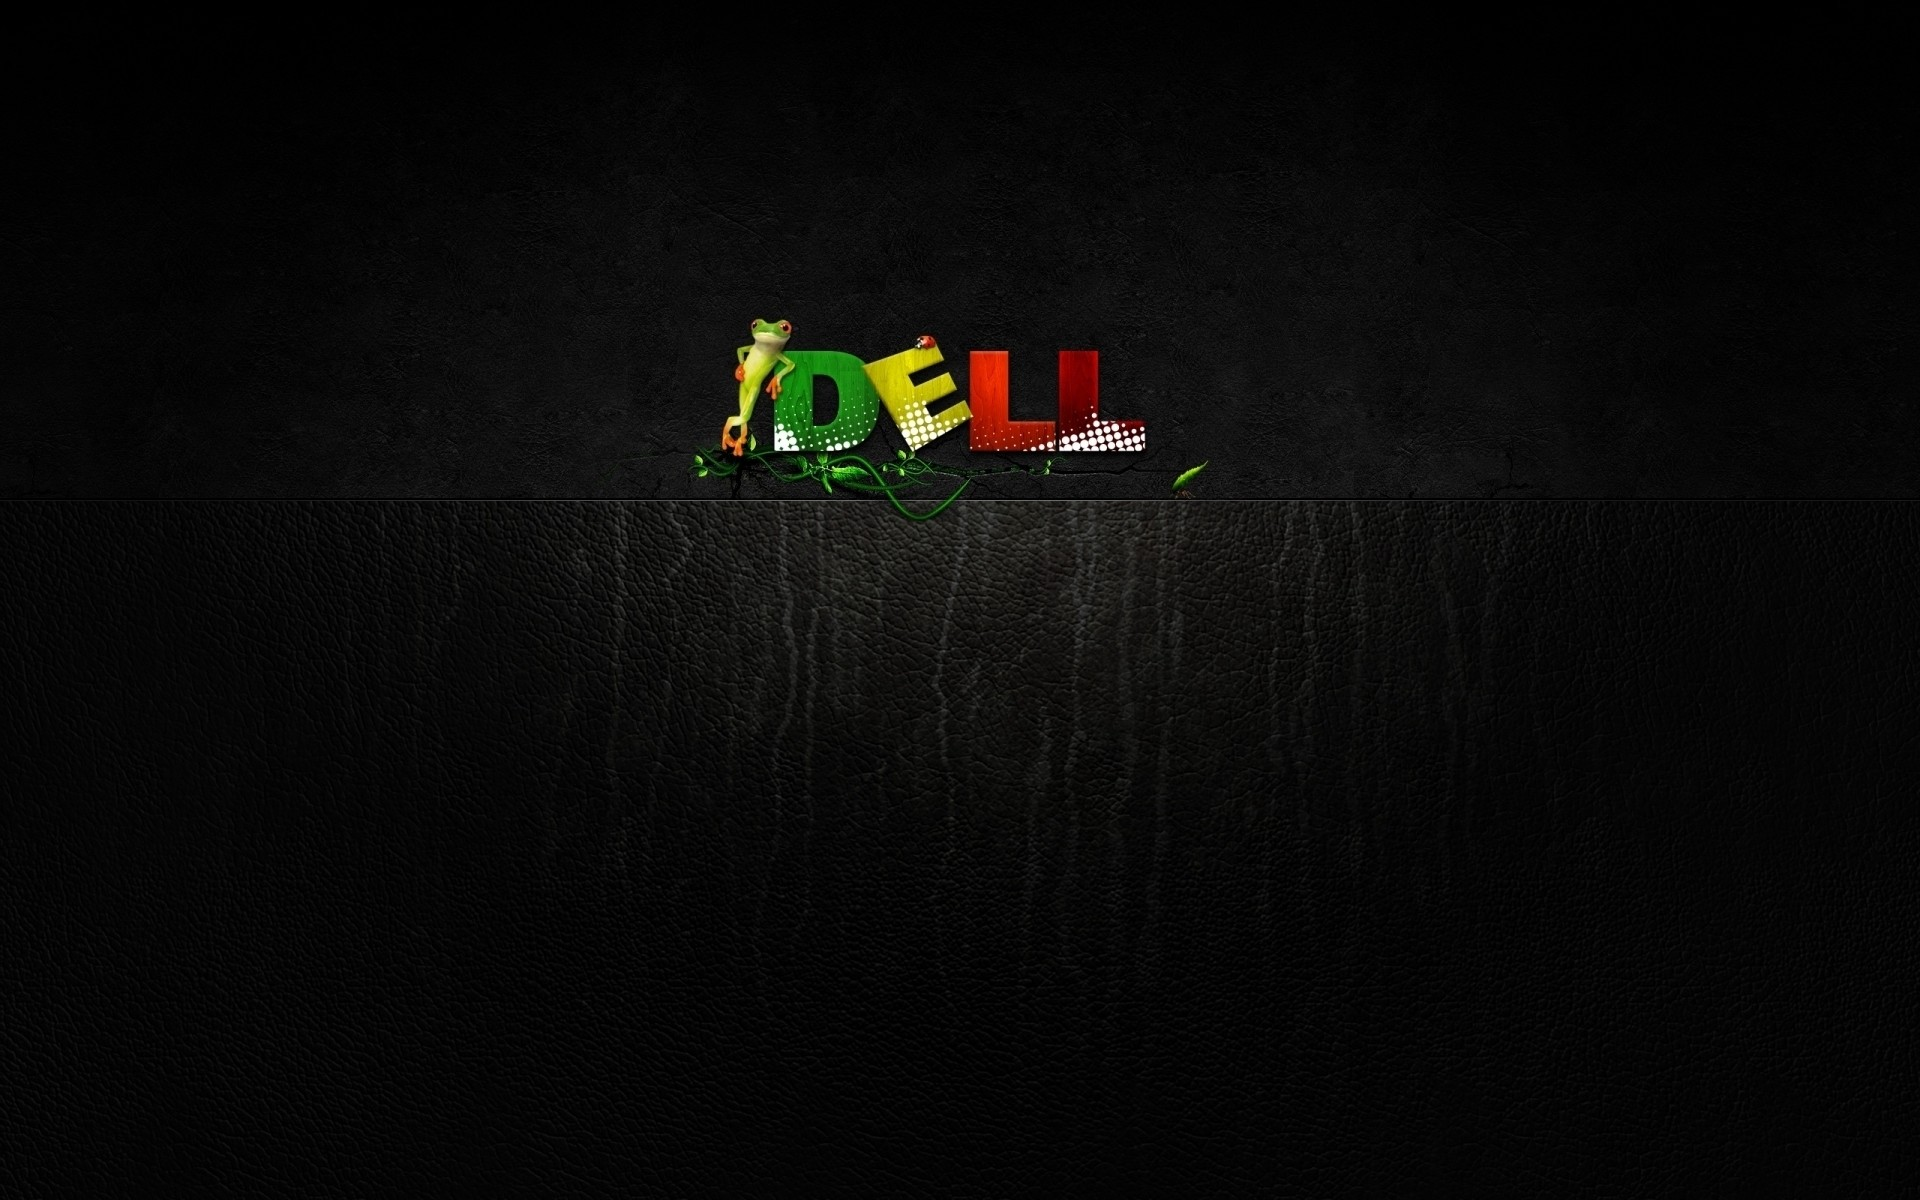 Wallpaper dell, company, computers, frog, green, yellow, red